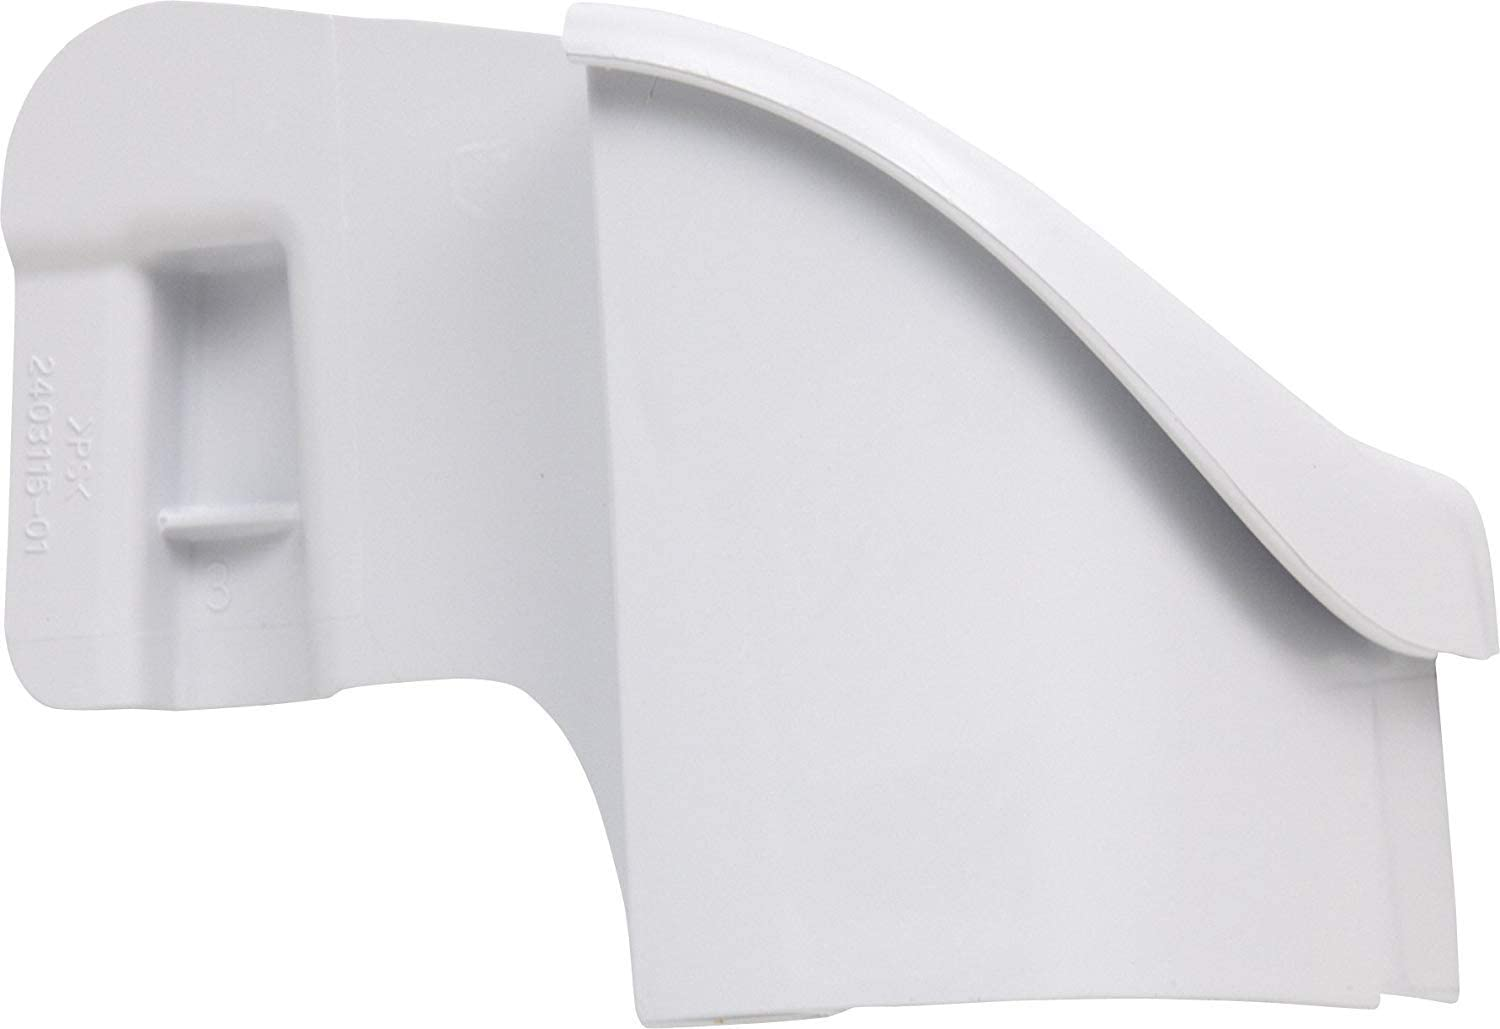 240311501 Refrigerator Door Shelf End Cap, Left Hand, White. Replacement for Frigidaire, Electrolux, Kenmore